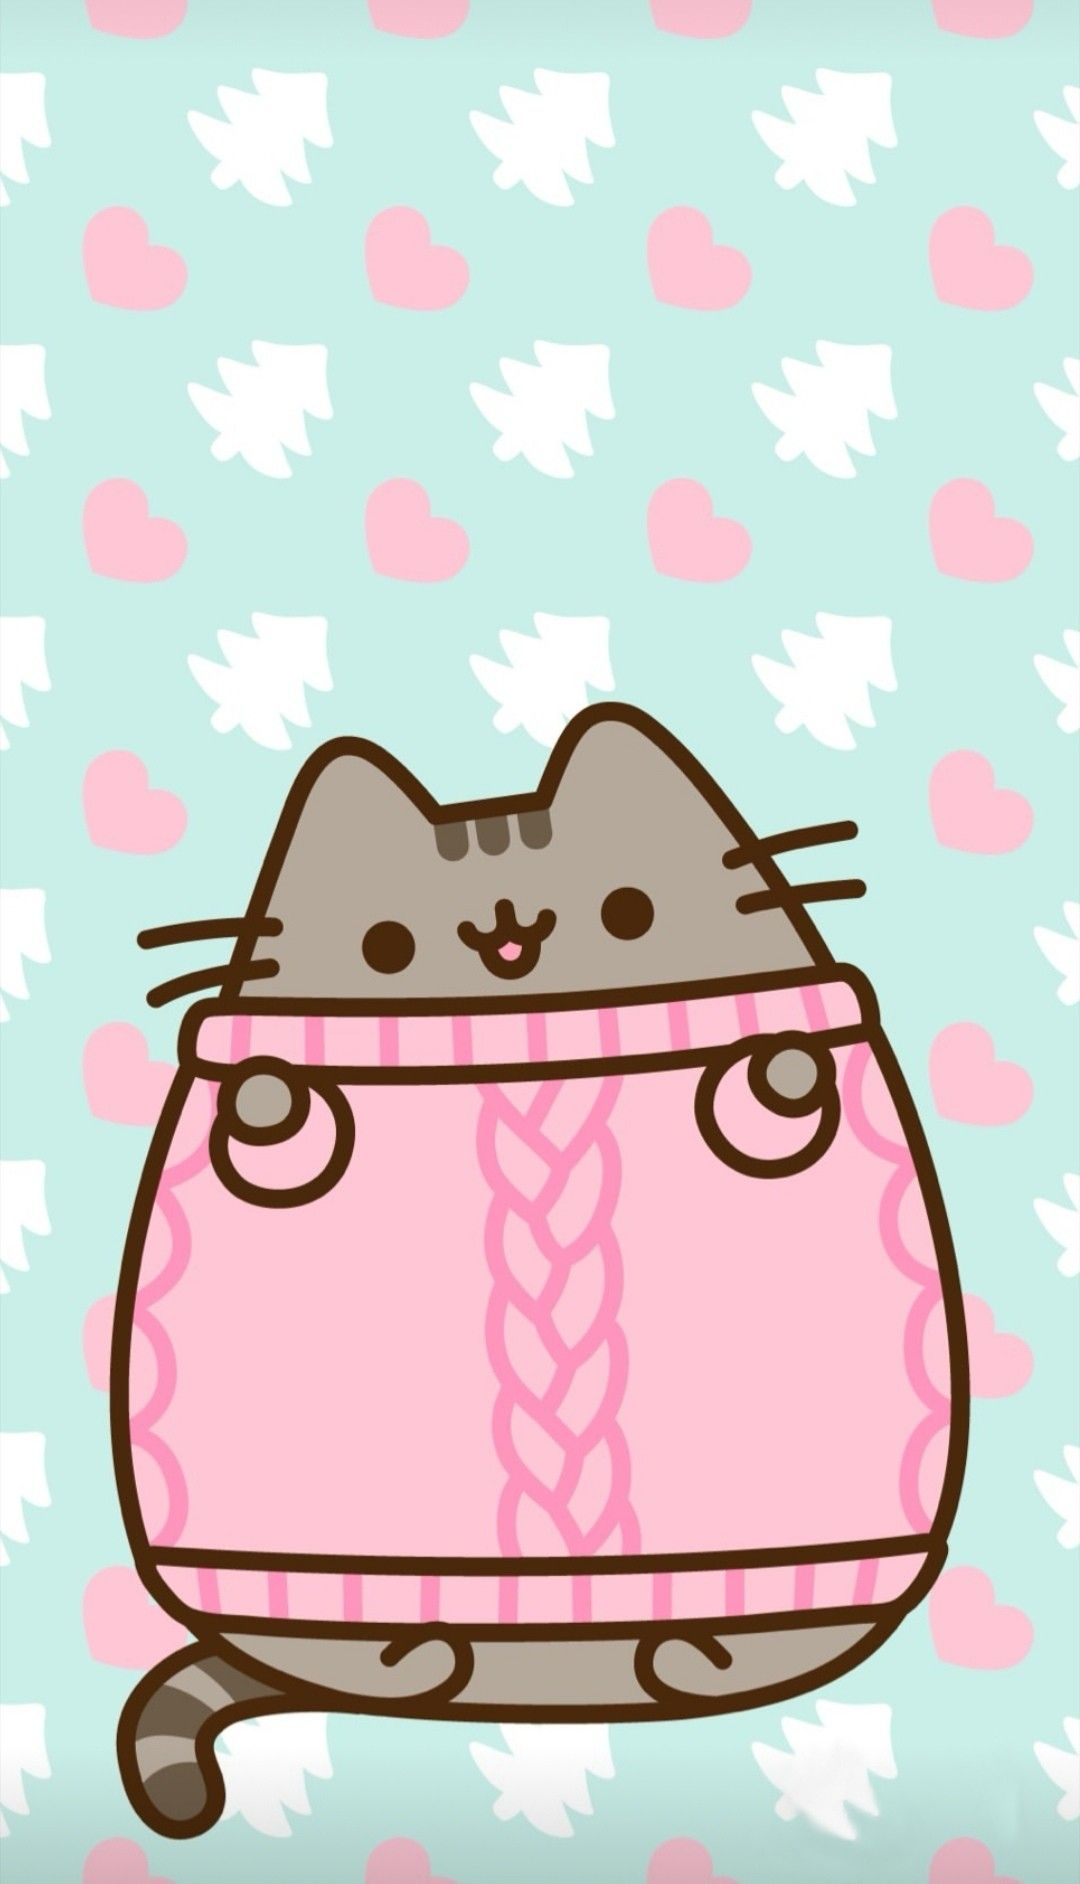 Pin By Pinterest Obsessed On Pusheen In 2019 Pusheen Cute